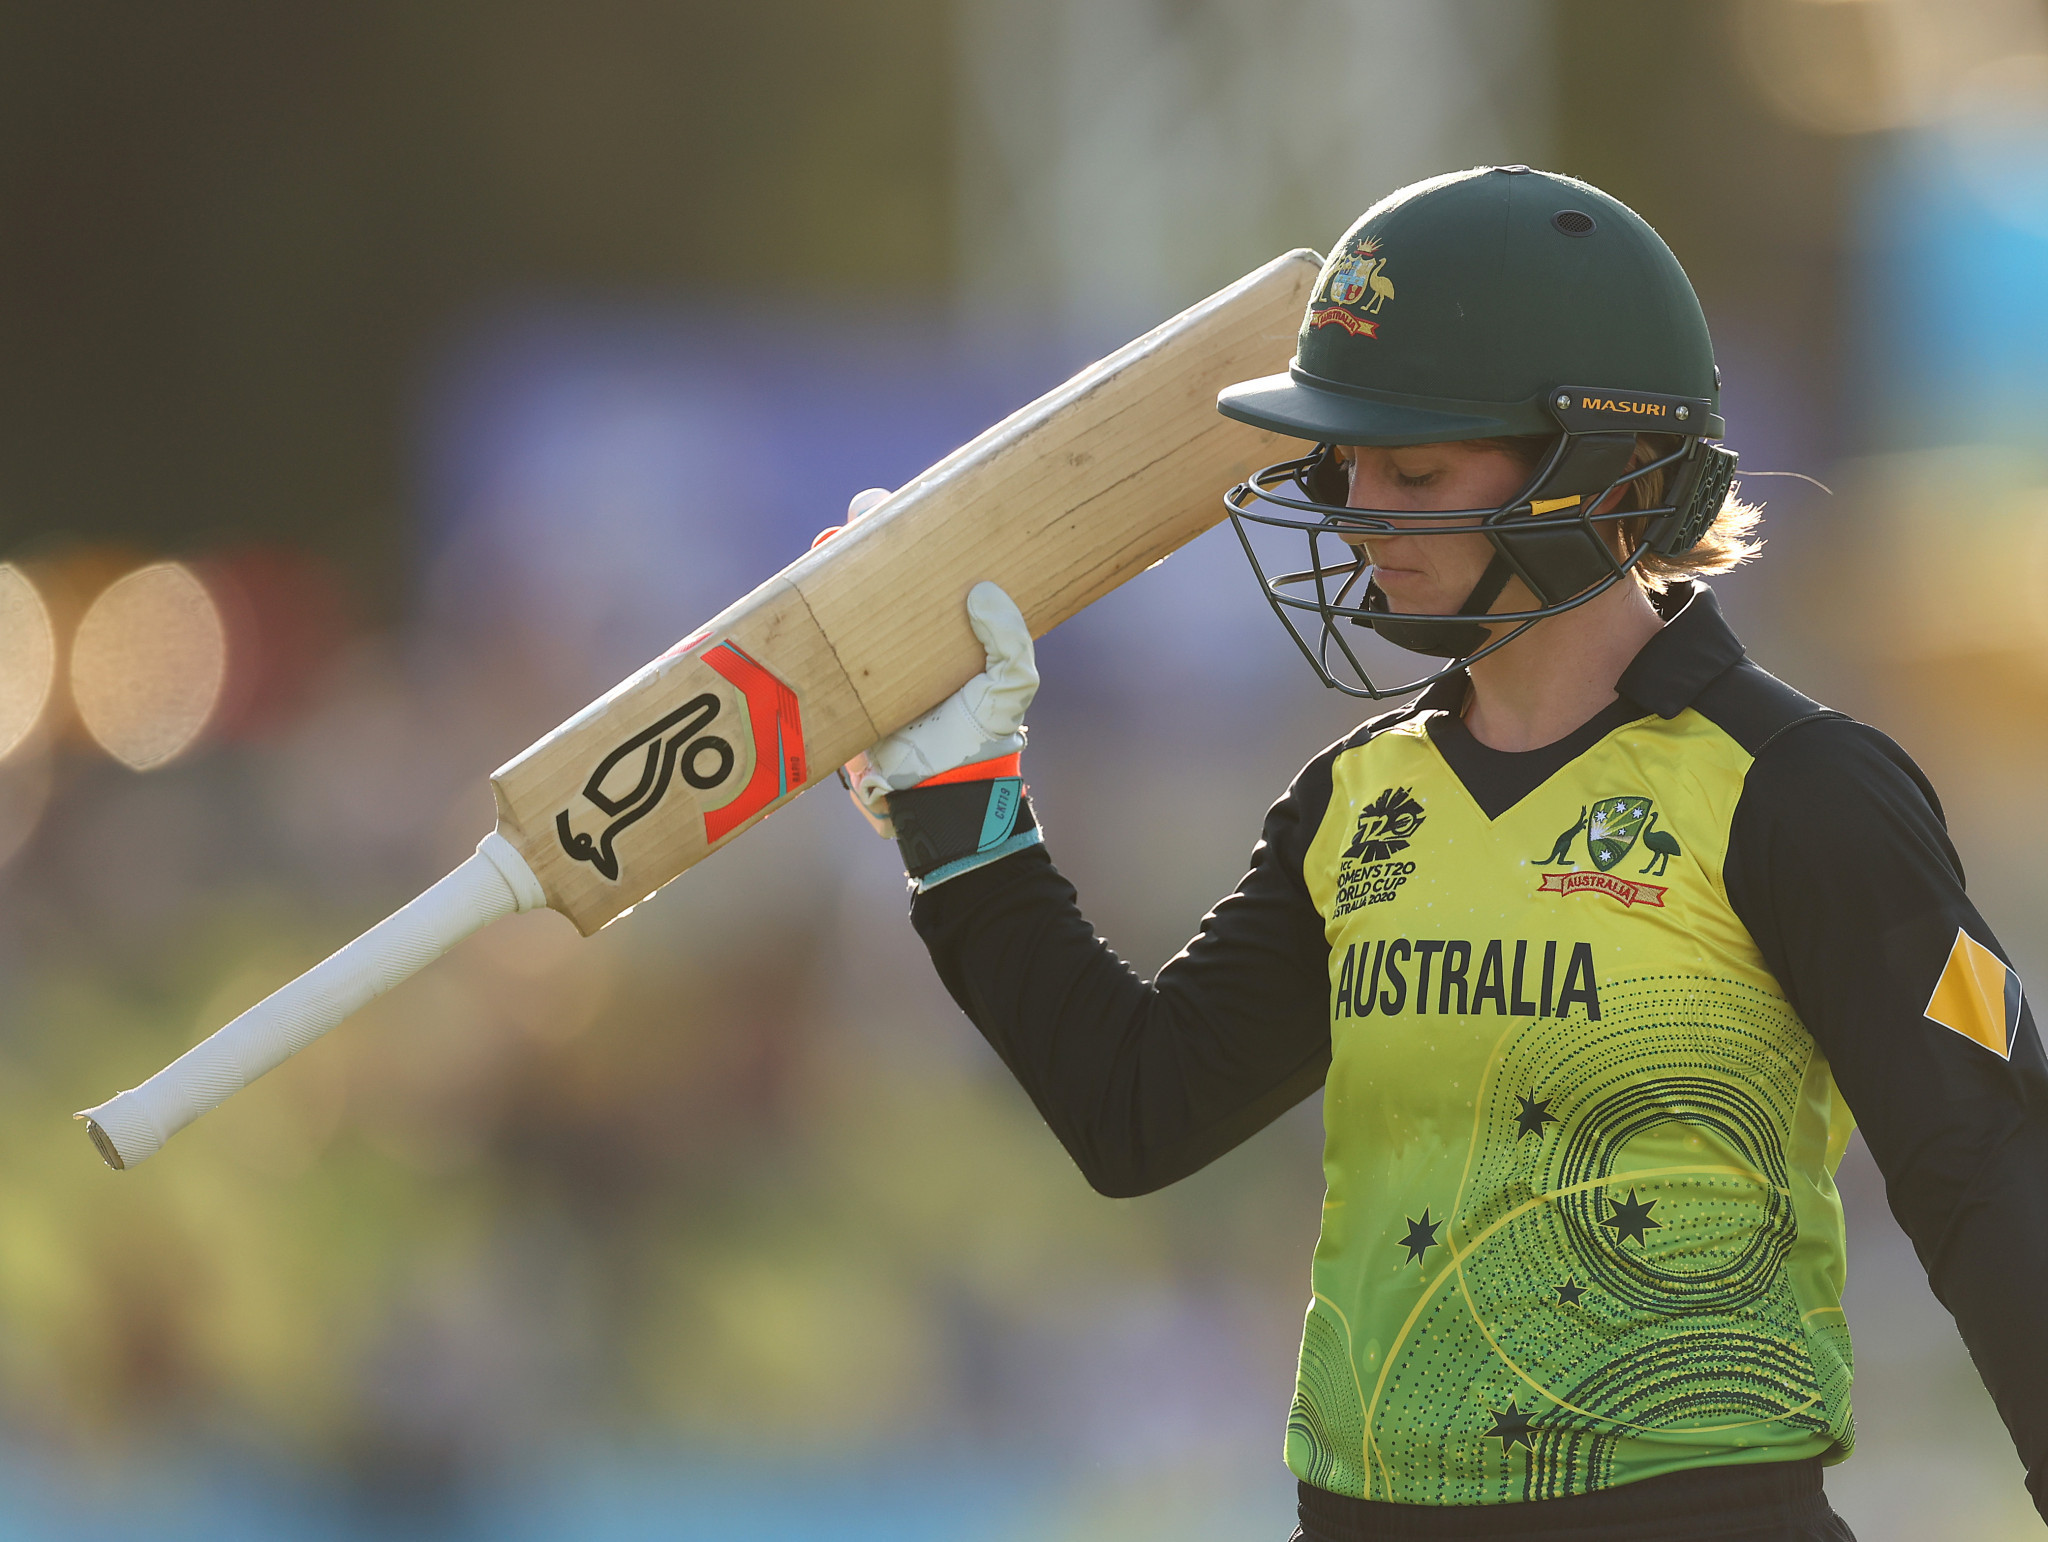 Australia recover from major scare to beat Sri Lanka at Women's T20 World Cup